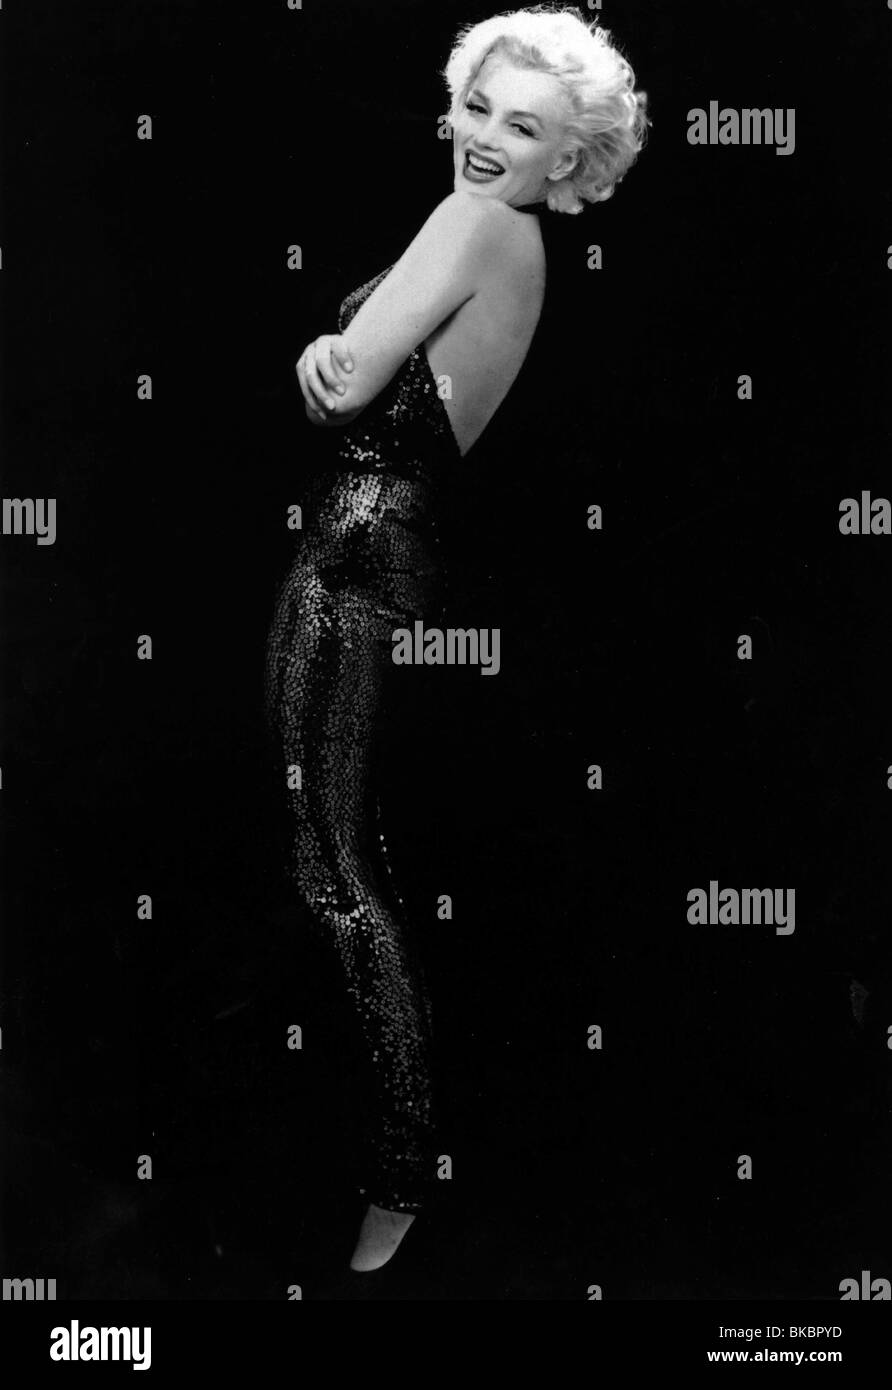 MARILYN MONROE PORTRAIT - Stock Image